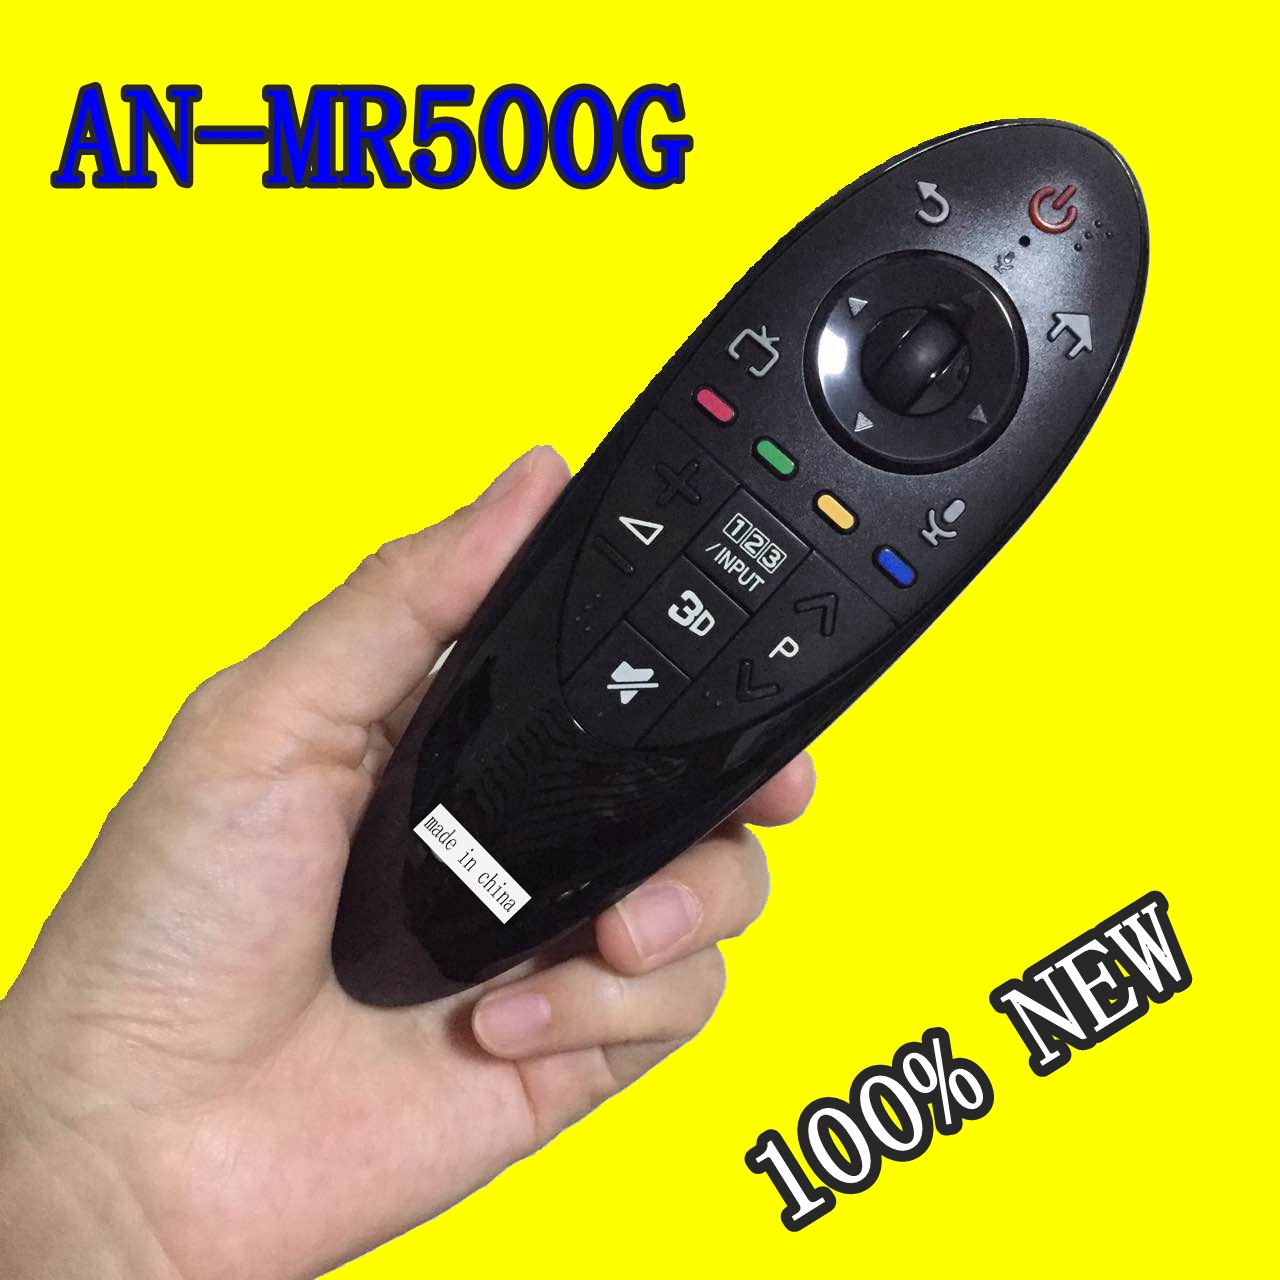 100% new AN-MR500G Magic Remote Control FIT for LG smart TV Series English version free shipping 2016 new free shipping neo snk arcade mvs magic key 2016 version